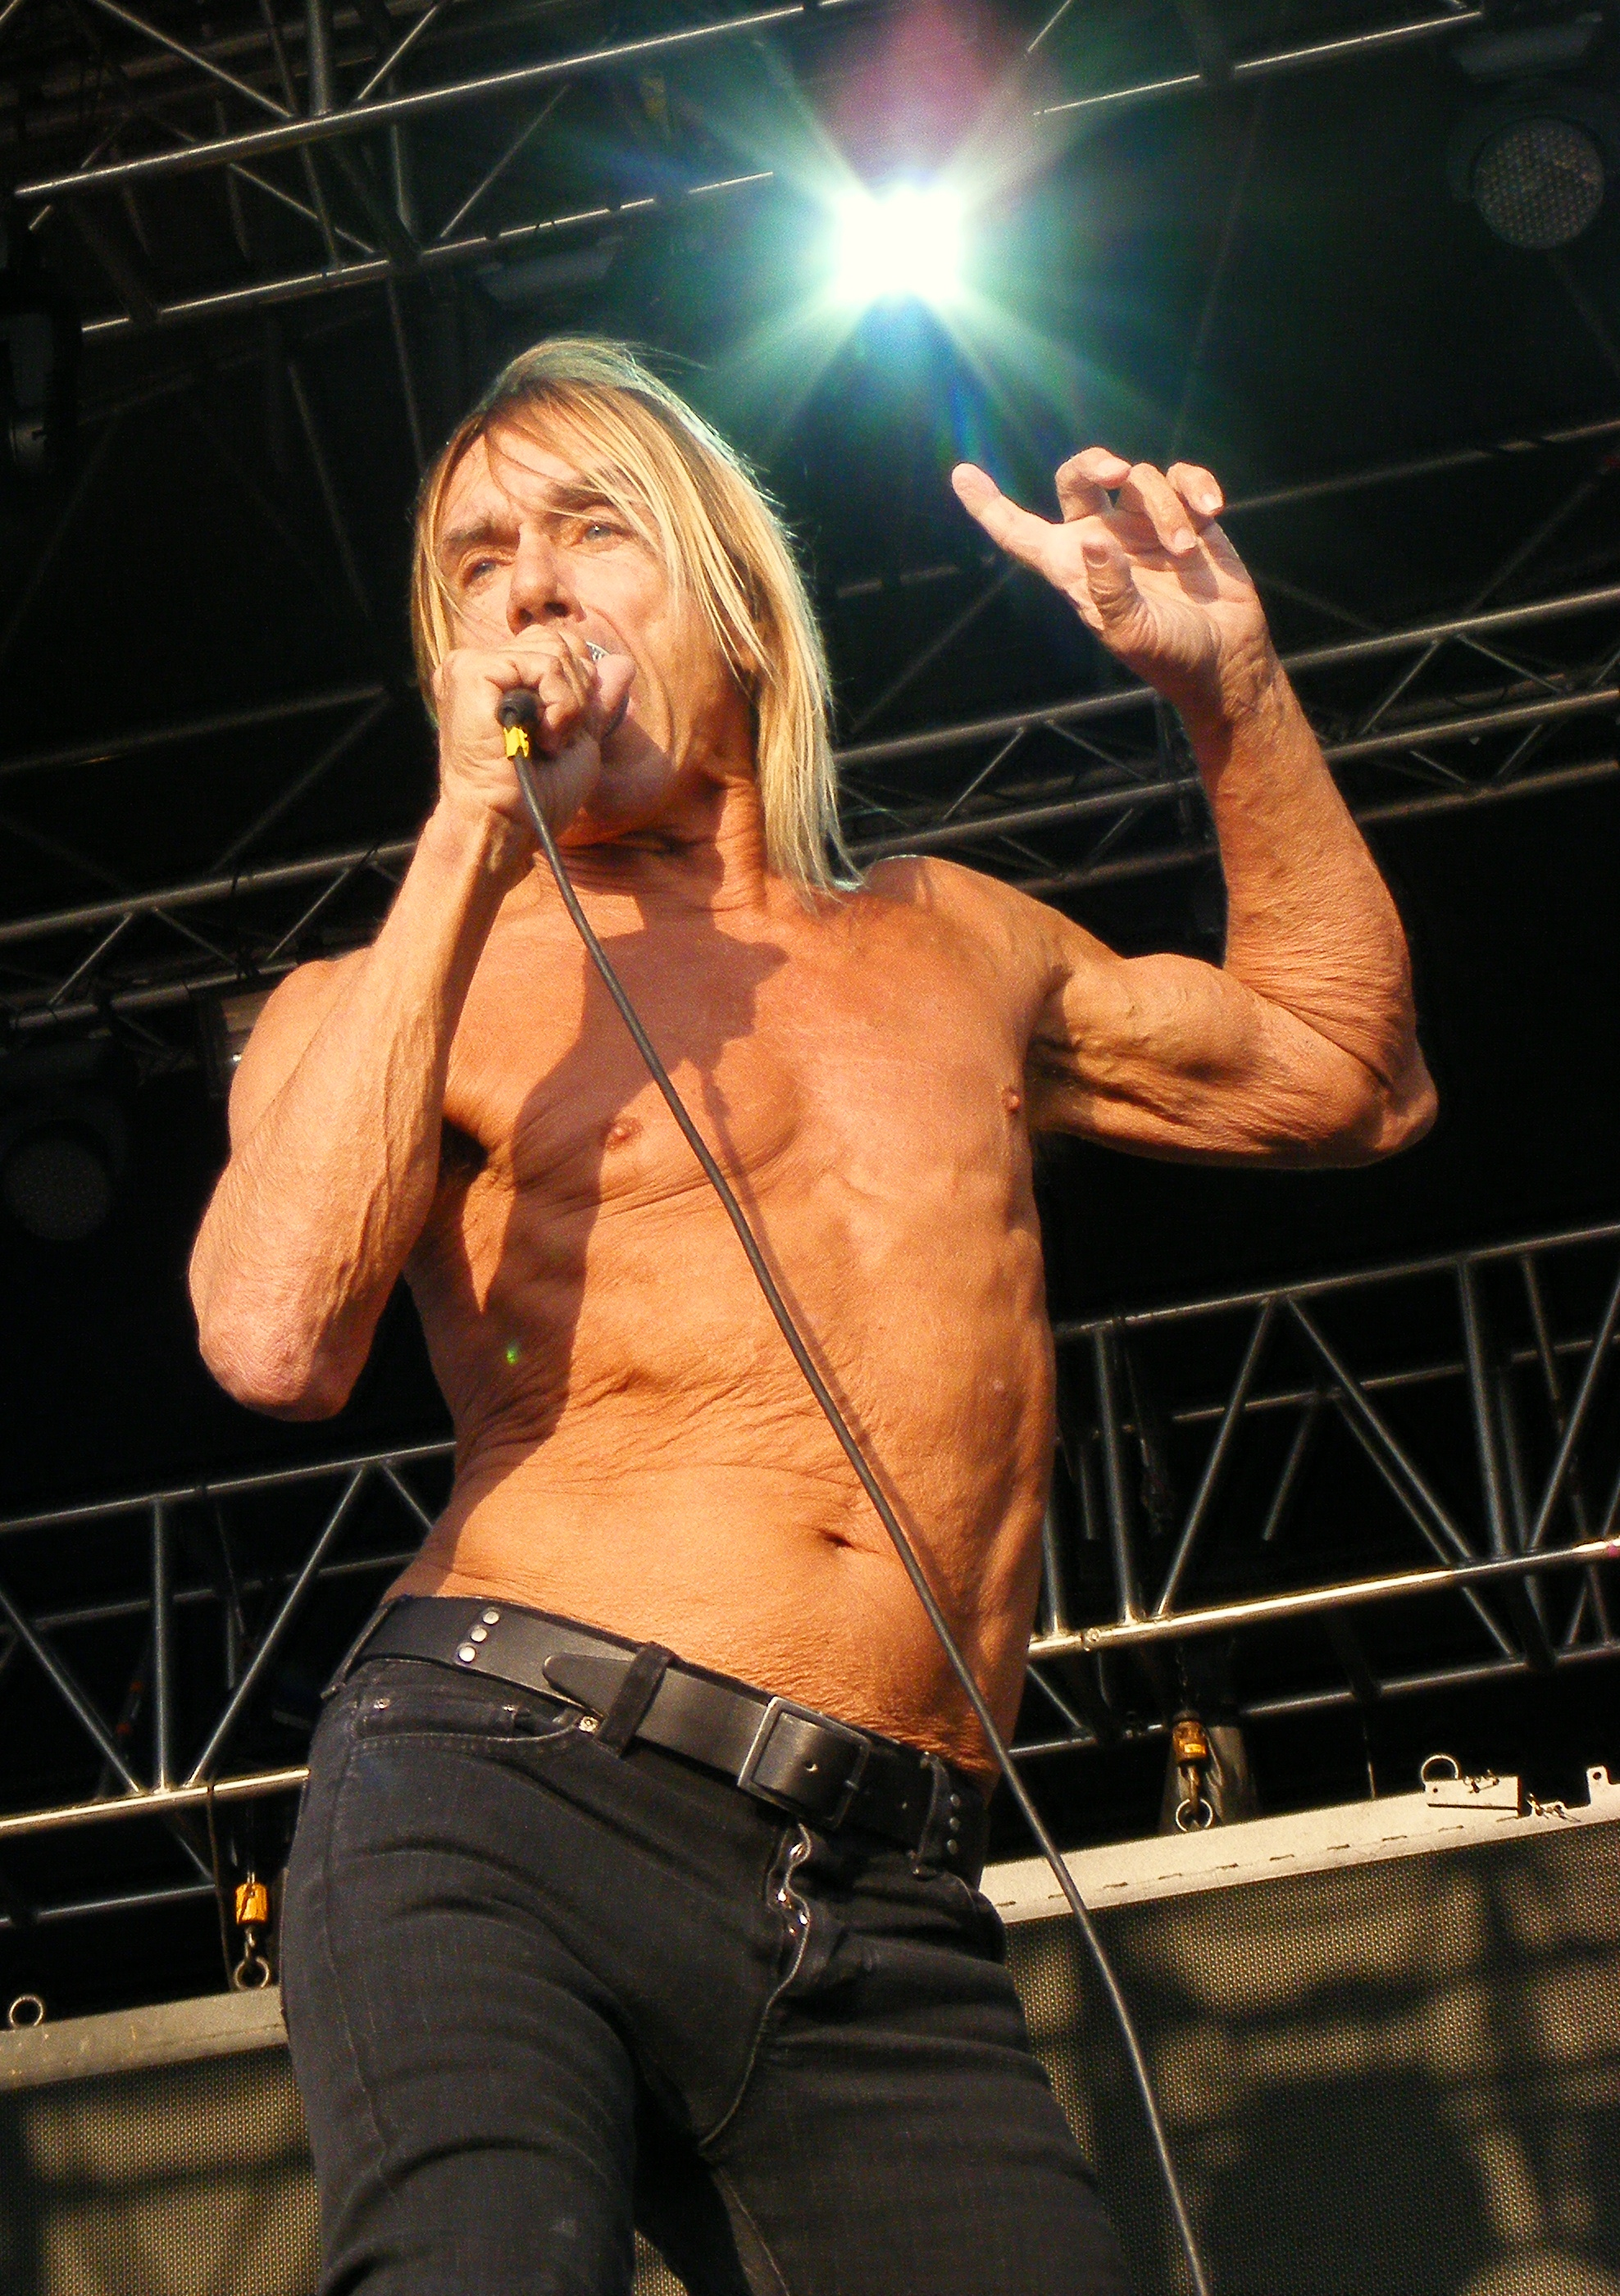 The 71-year old son of father James and mother Louella Iggy Pop in 2019 photo. Iggy Pop earned a  million dollar salary - leaving the net worth at 15 million in 2019